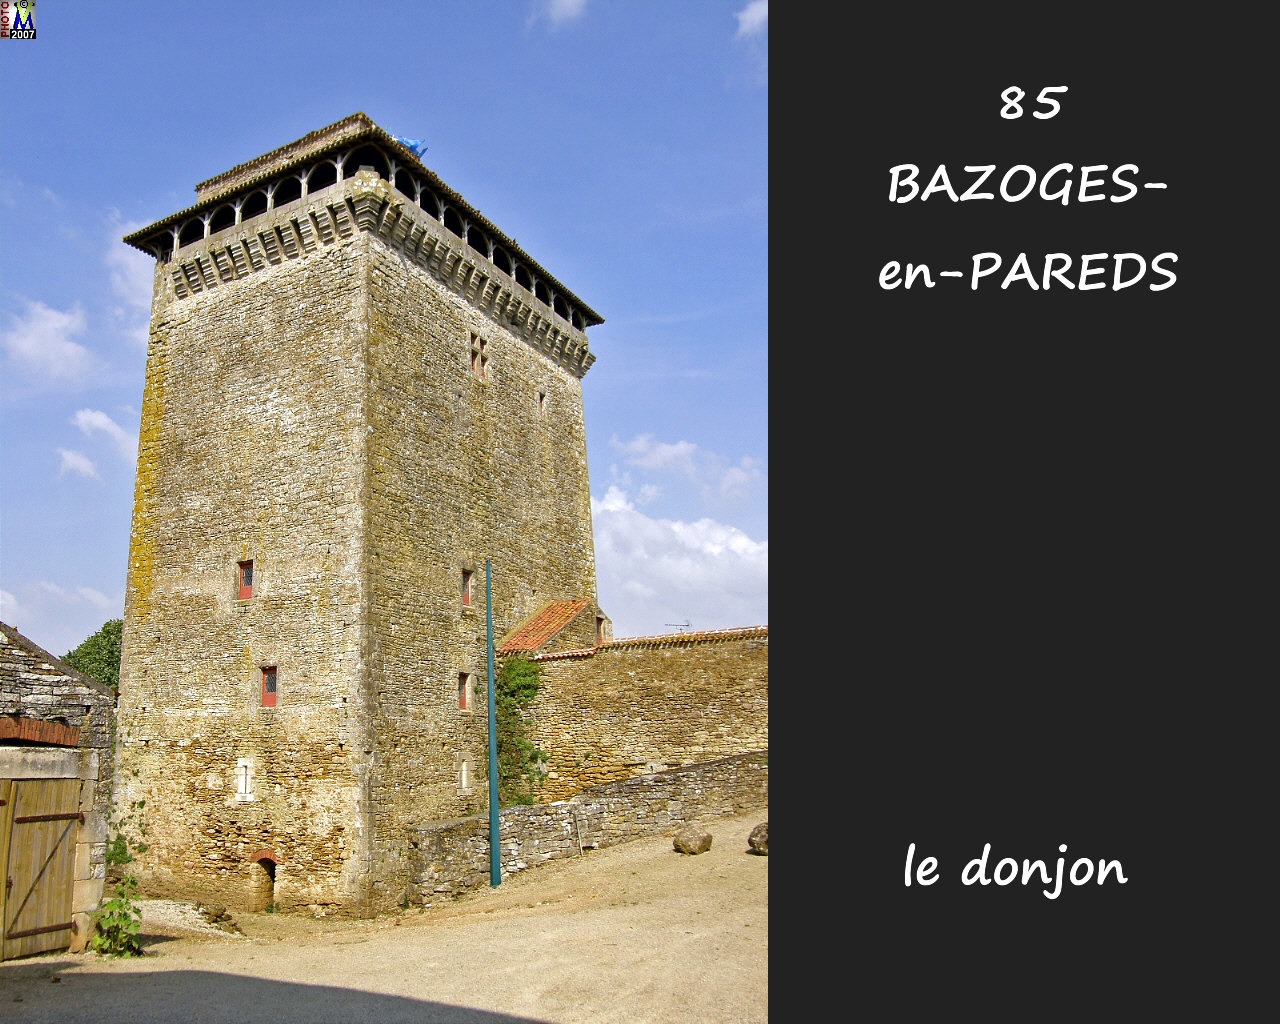 85BAZOGES-PAREDS_donjon_112.jpg